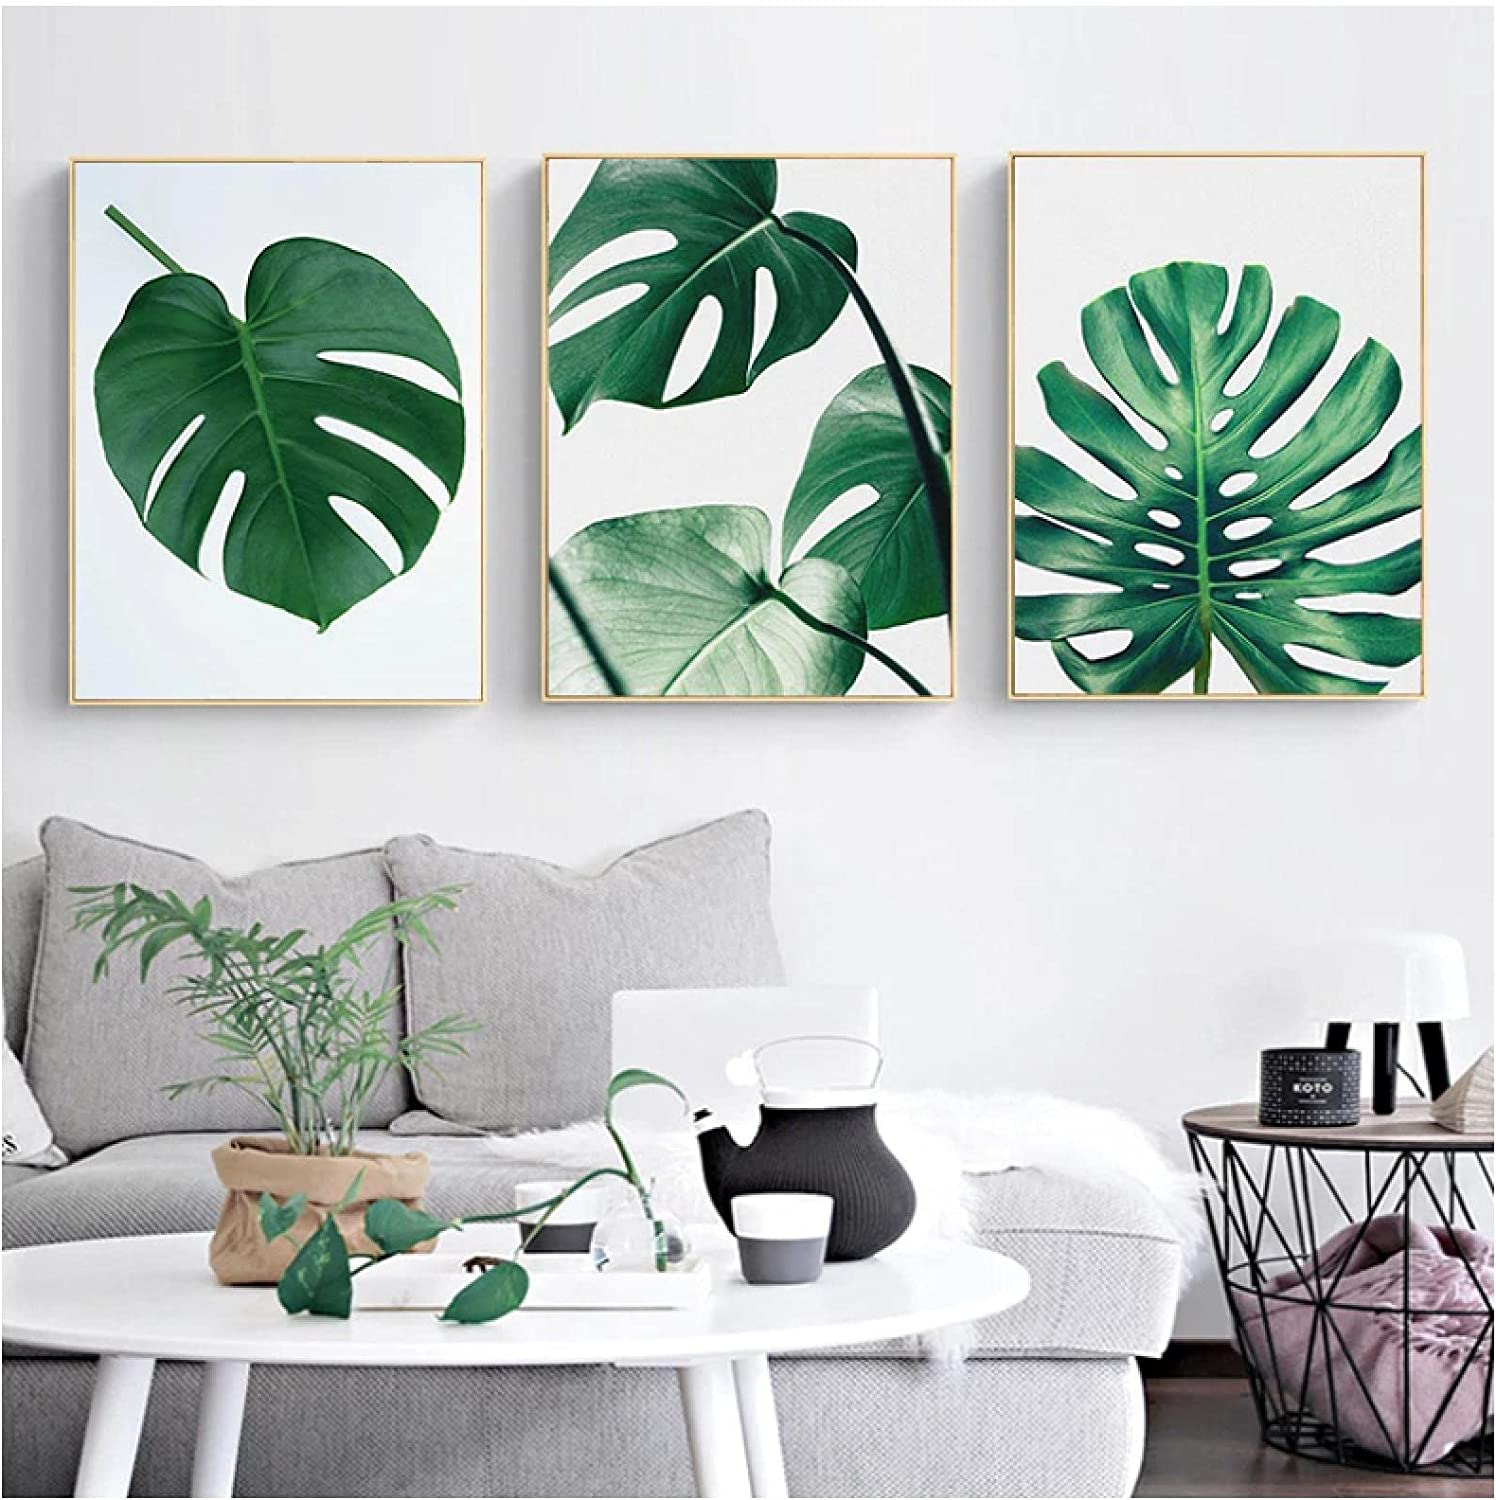 Wall Factory outlet Art,Tropical Year-end gift Leaf Posters Palm Monstera Banan Prints